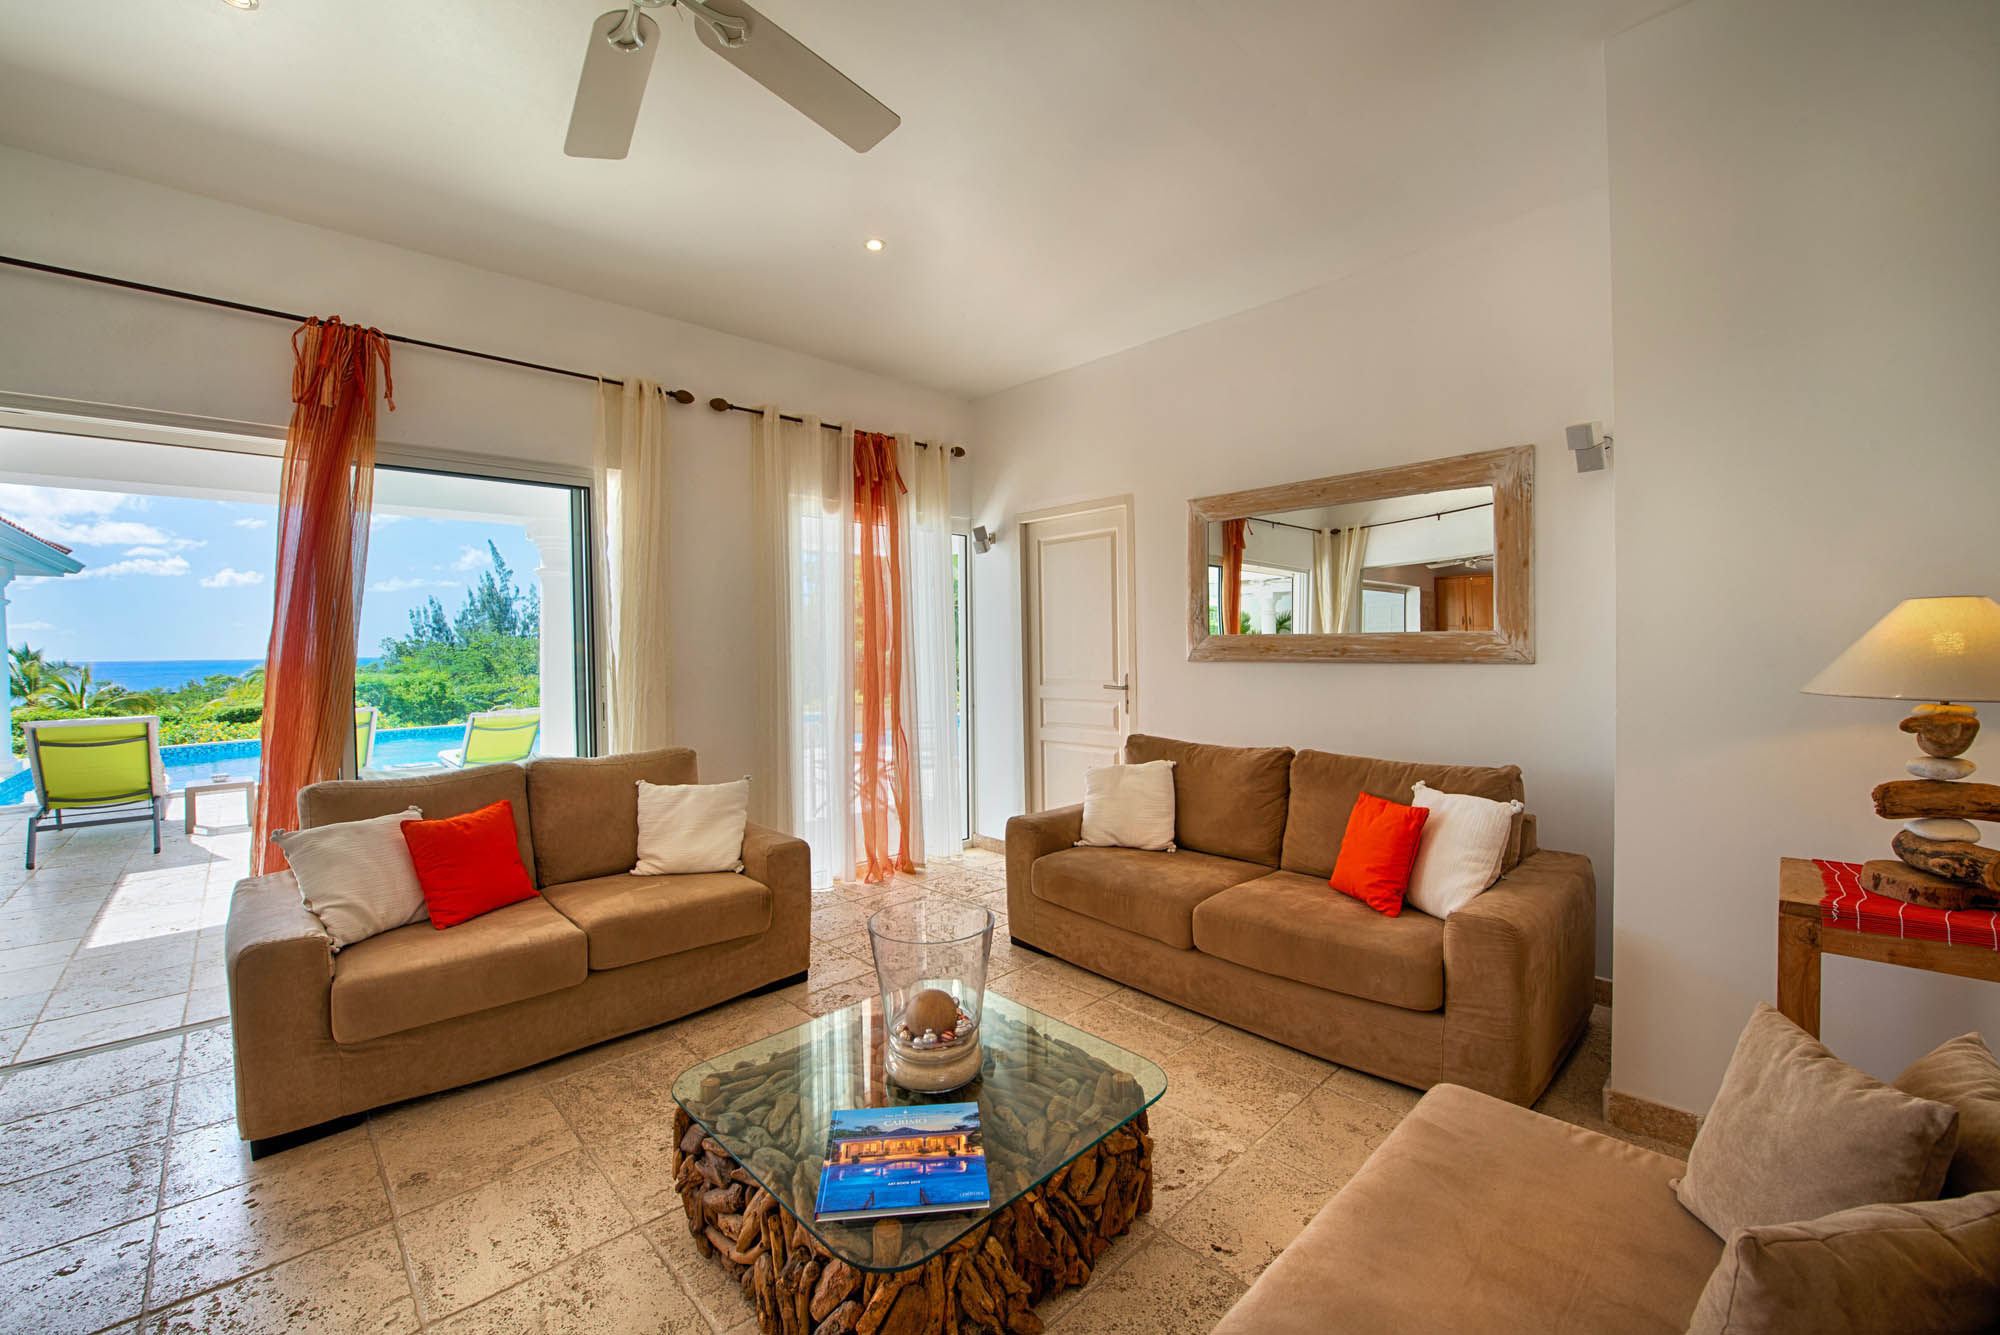 The great view from the living room of Lune de Miel, Baie Longue, Terres Basses, St. Martin villa rental, French West Indies.